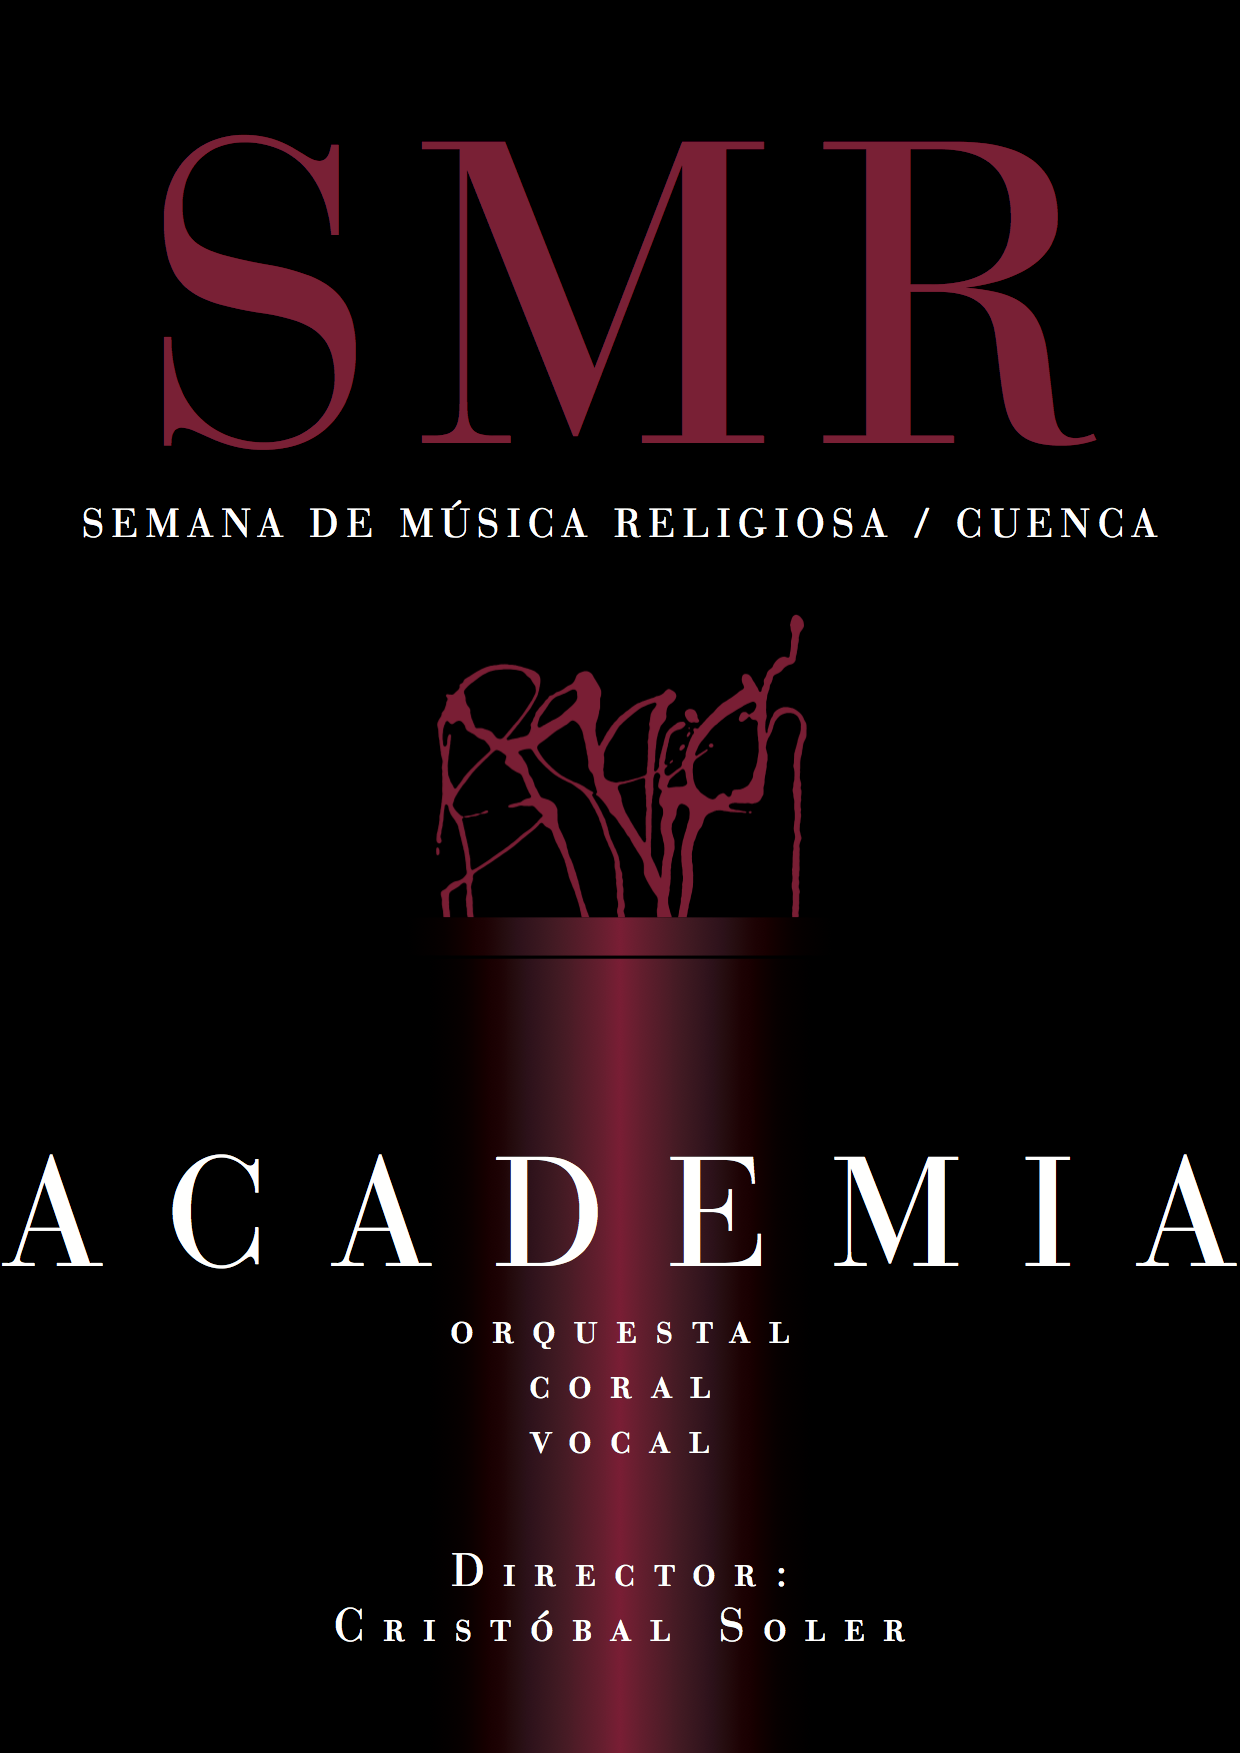 Academy associated with the Religious Music Week